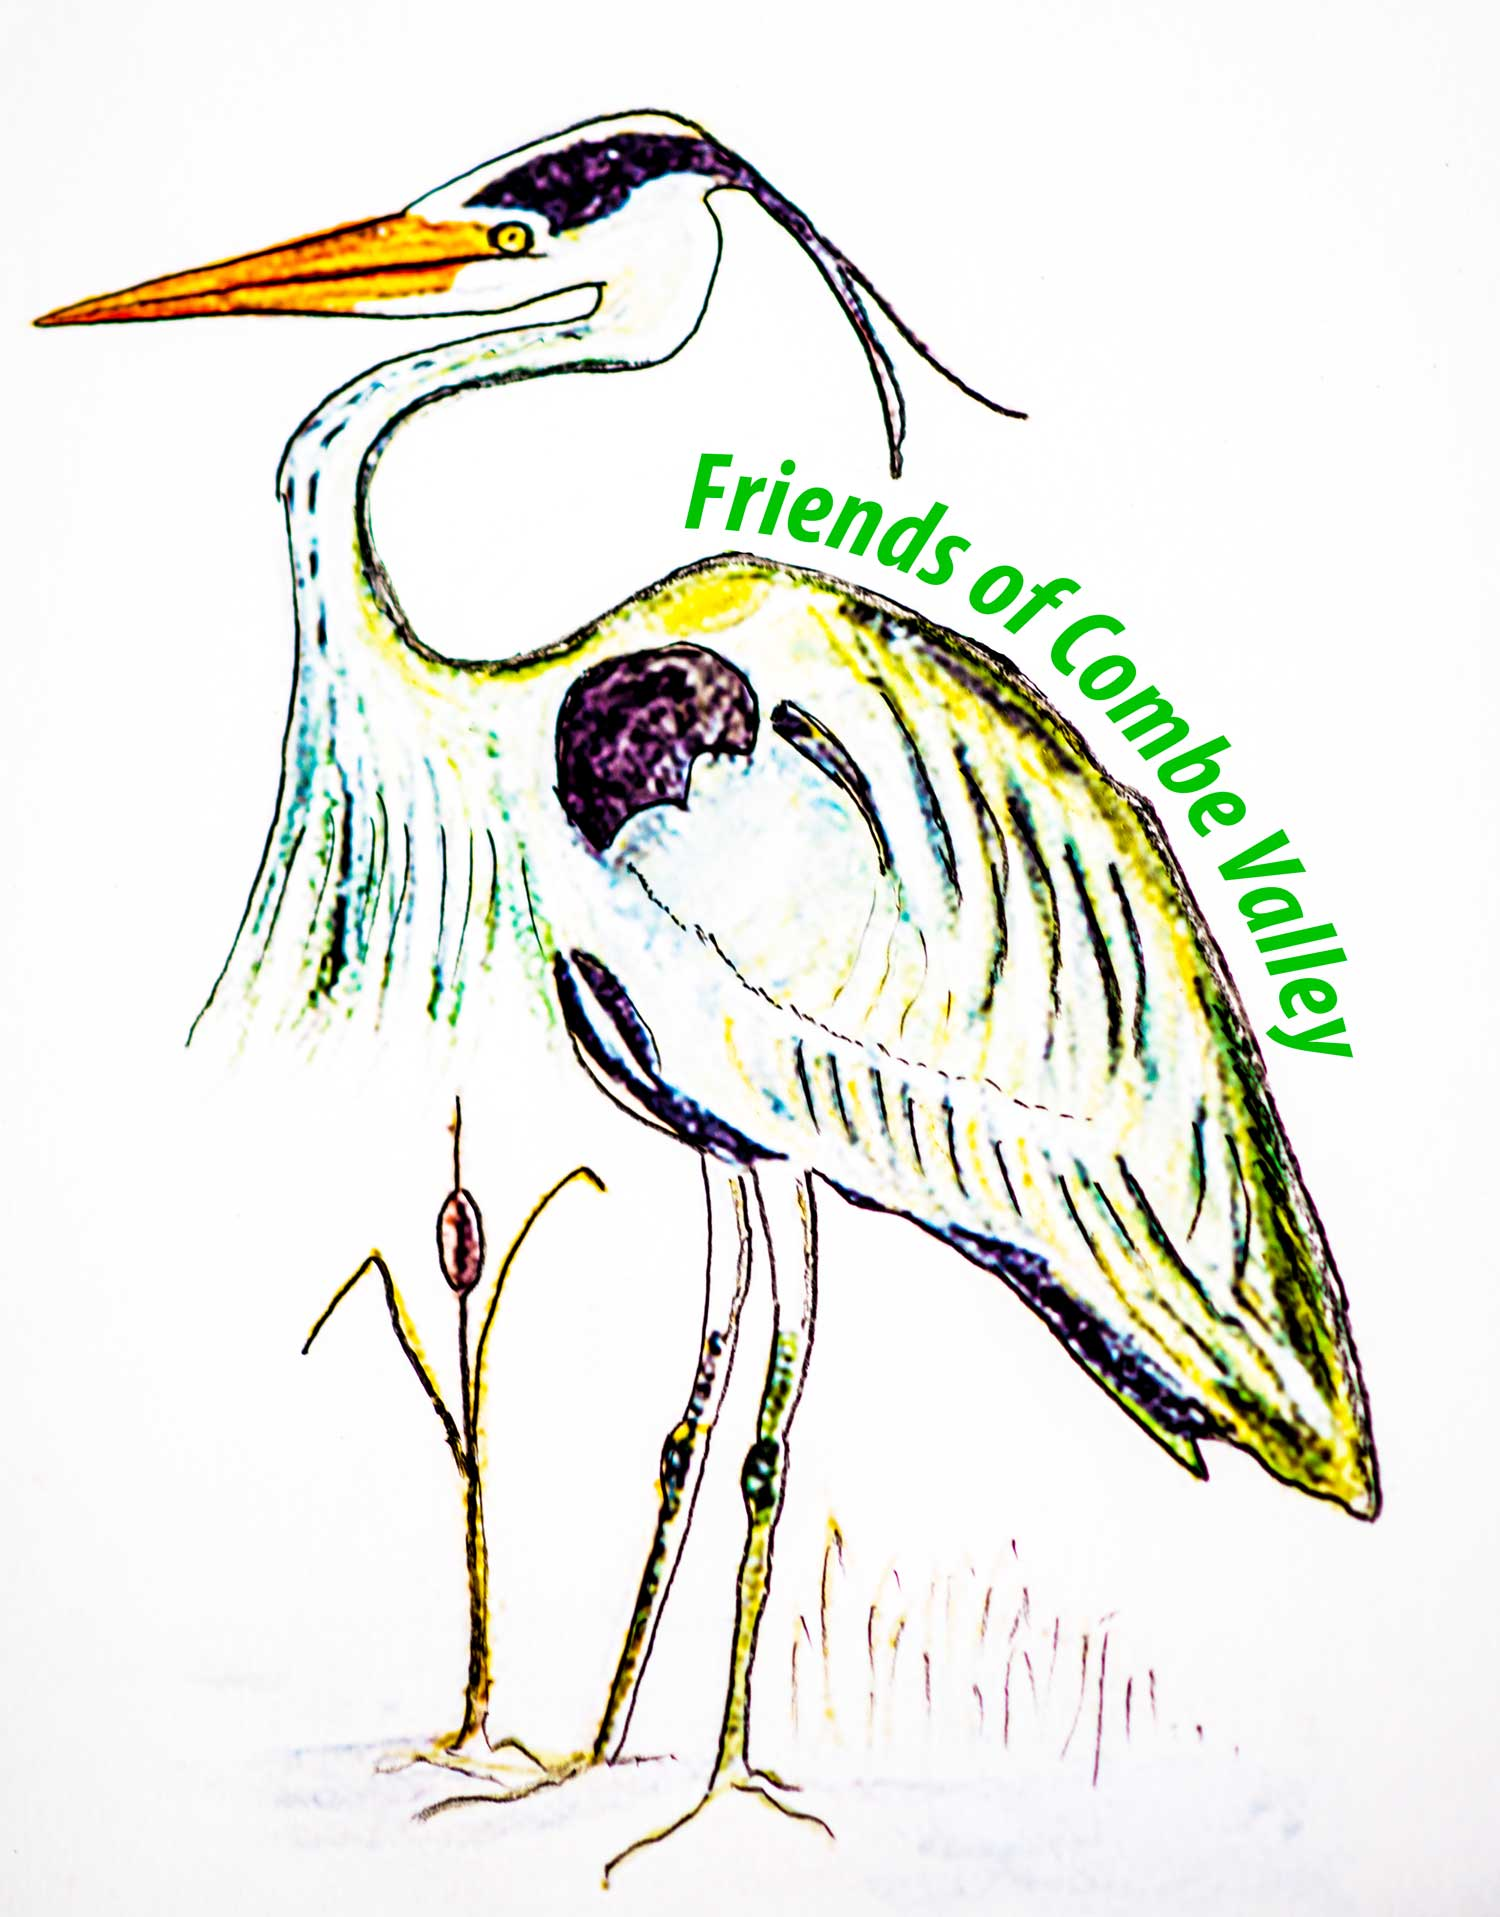 Friends of Combe Valley logo